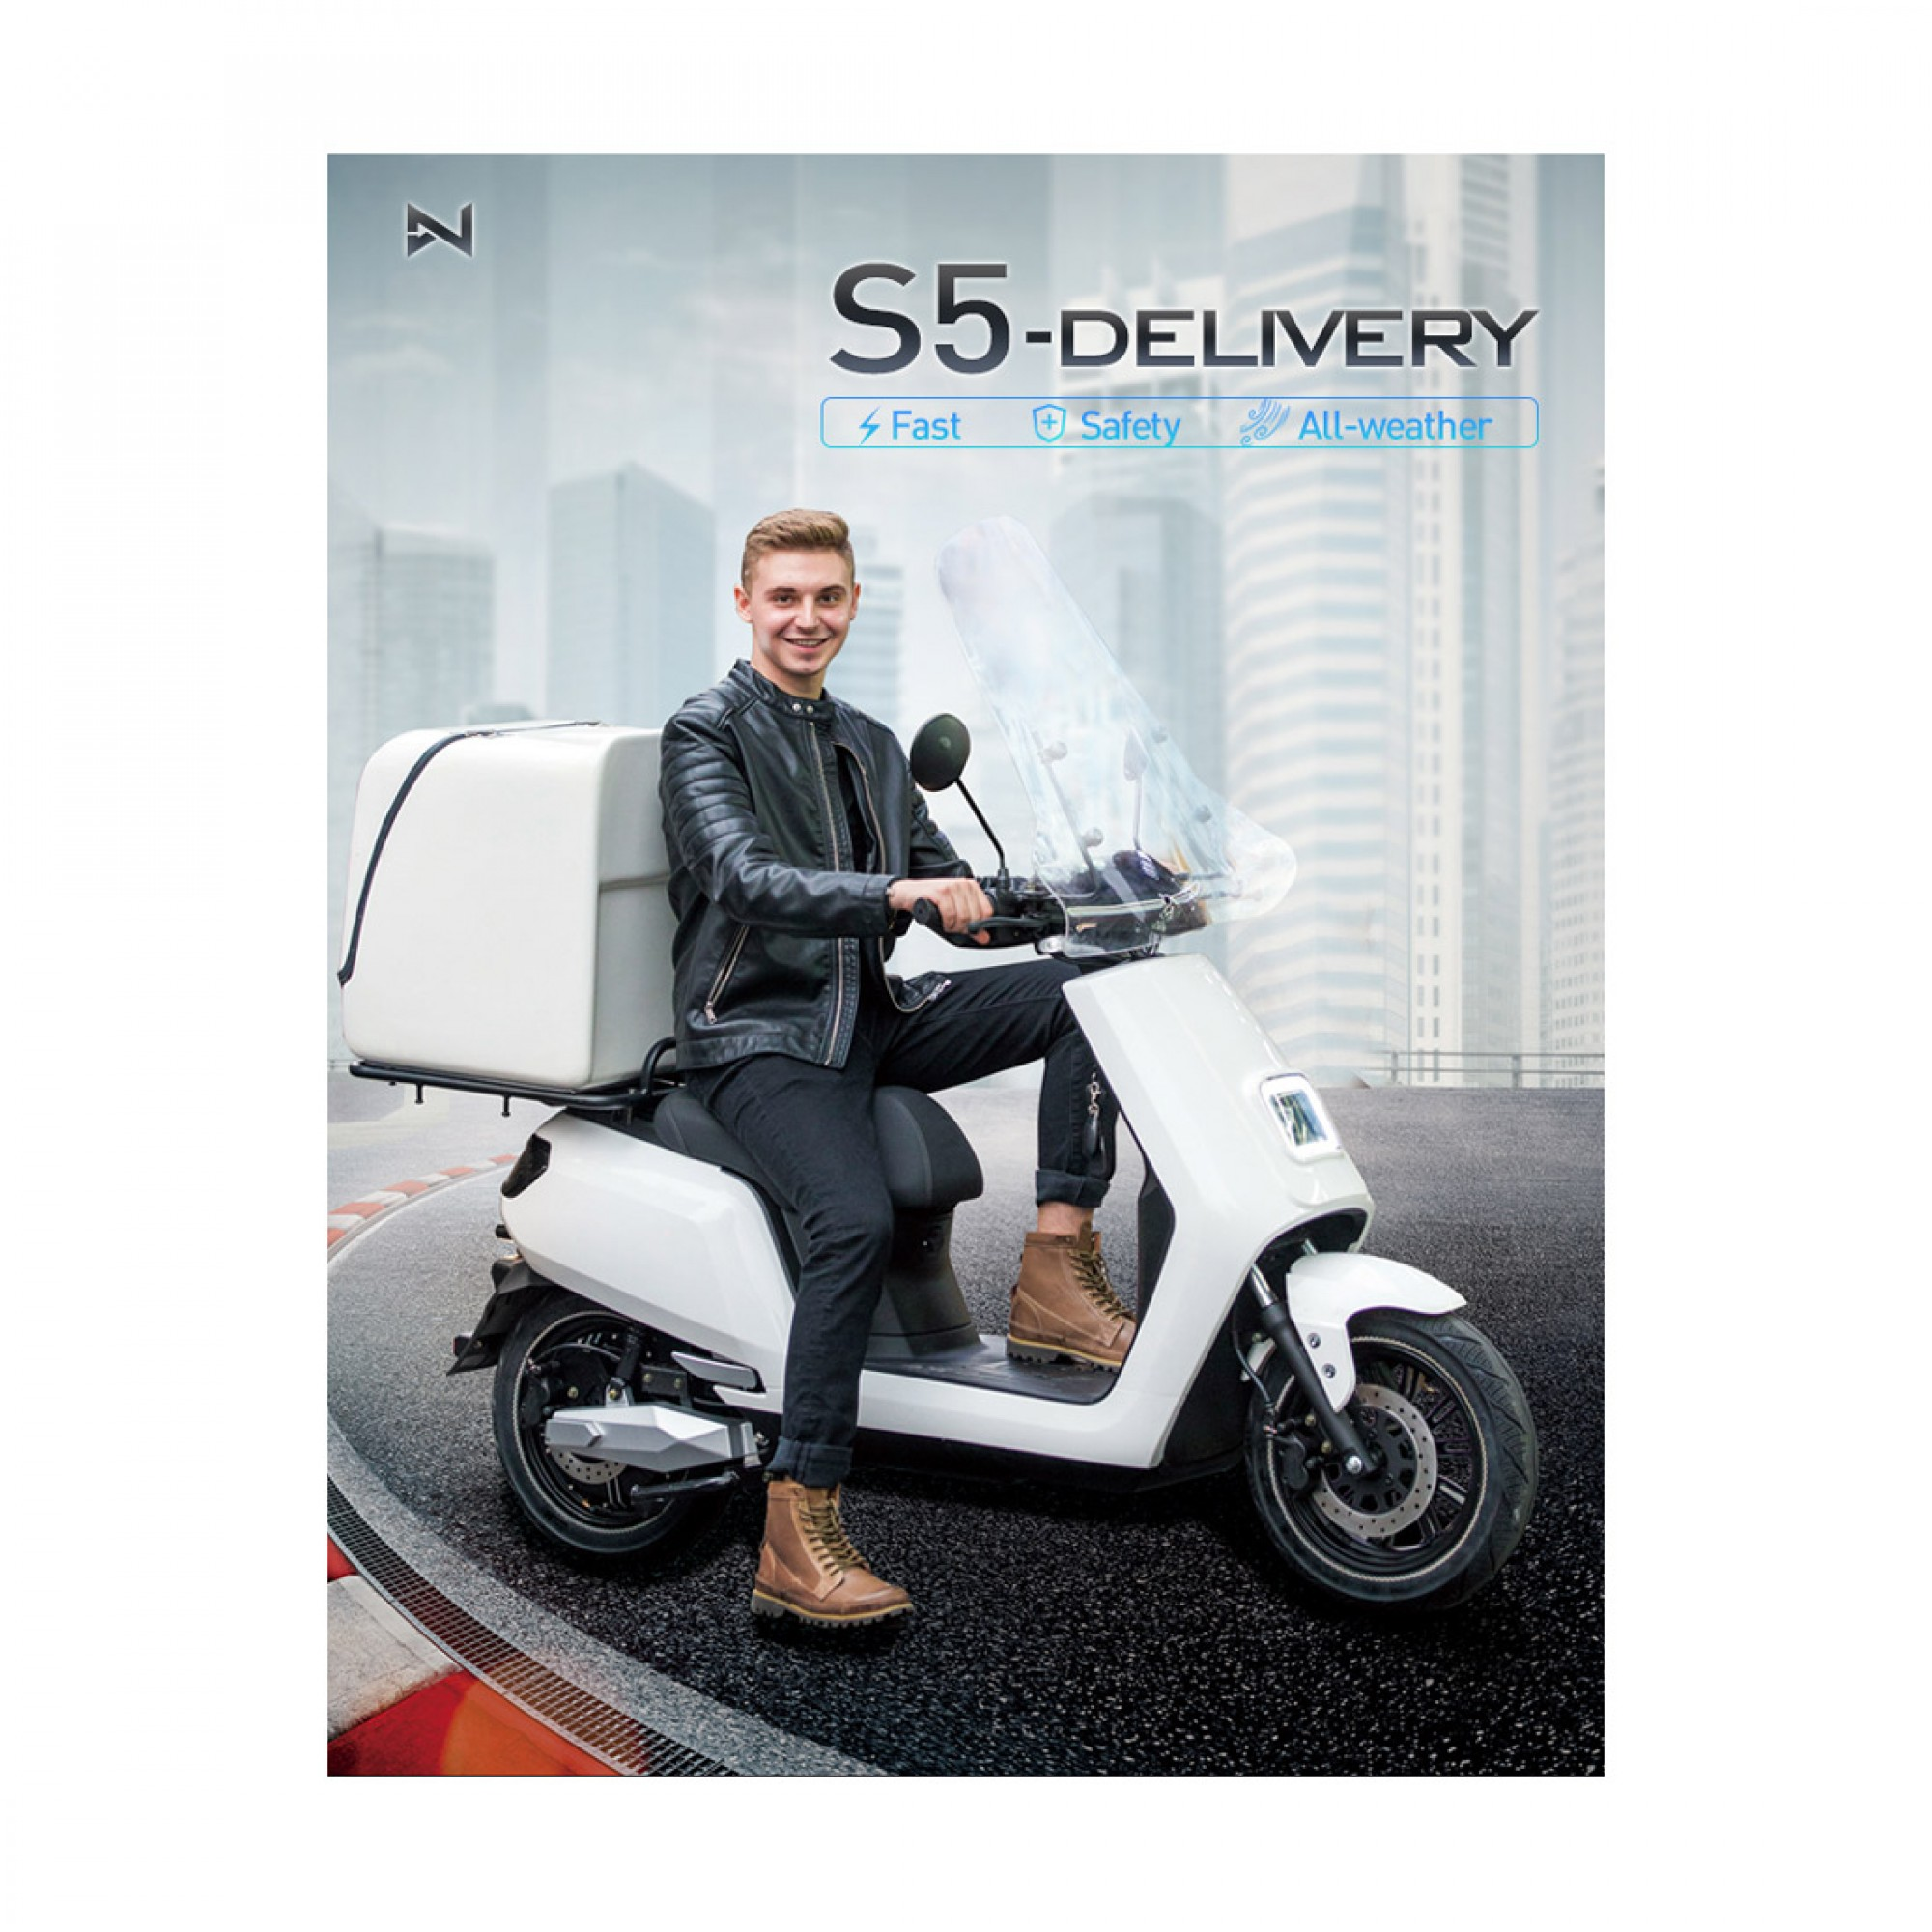 S5 Delivery Lvneng